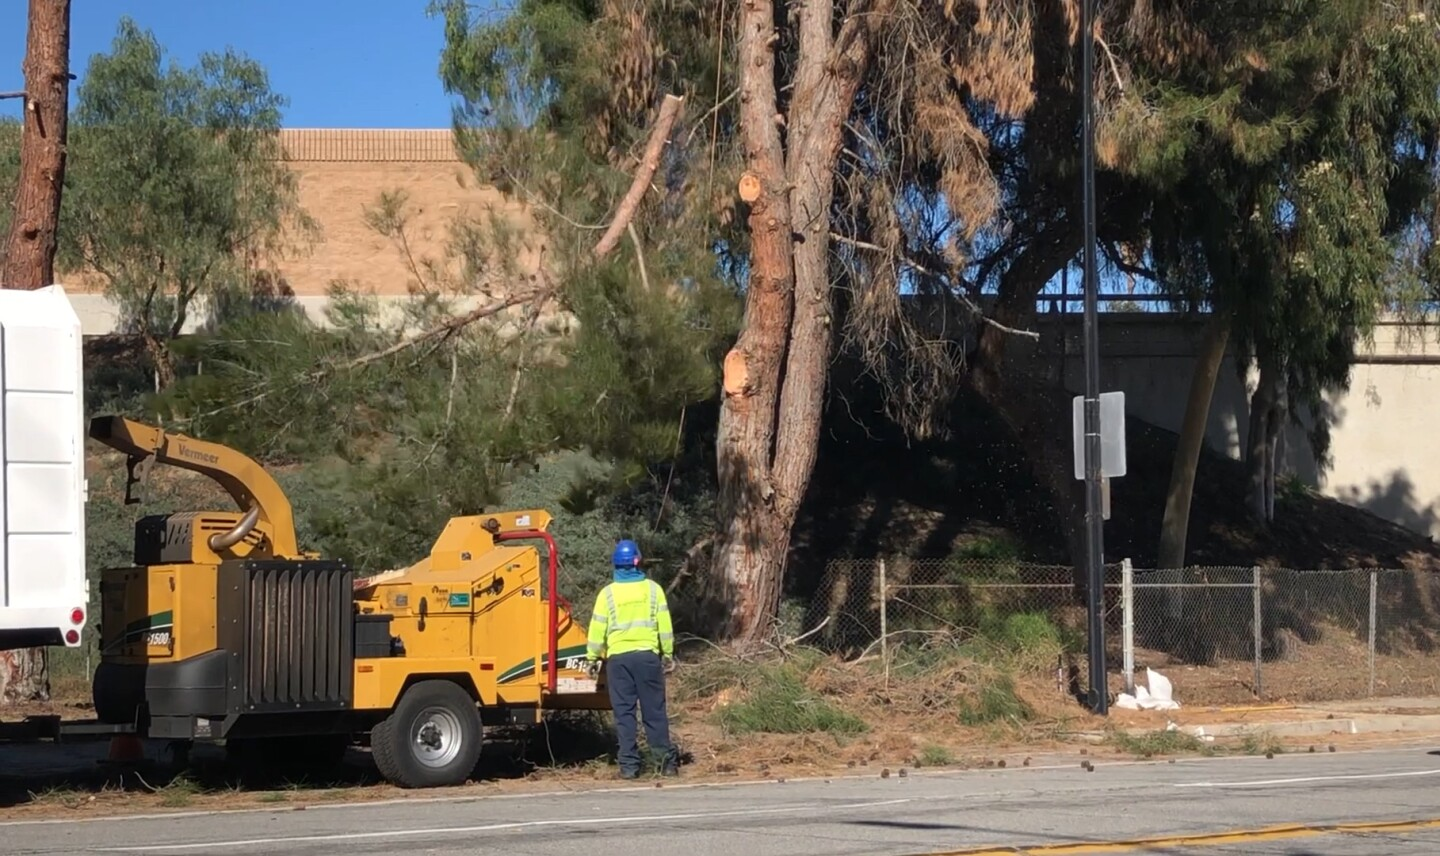 City worker near wood chipper, branch of tree falling in front of him